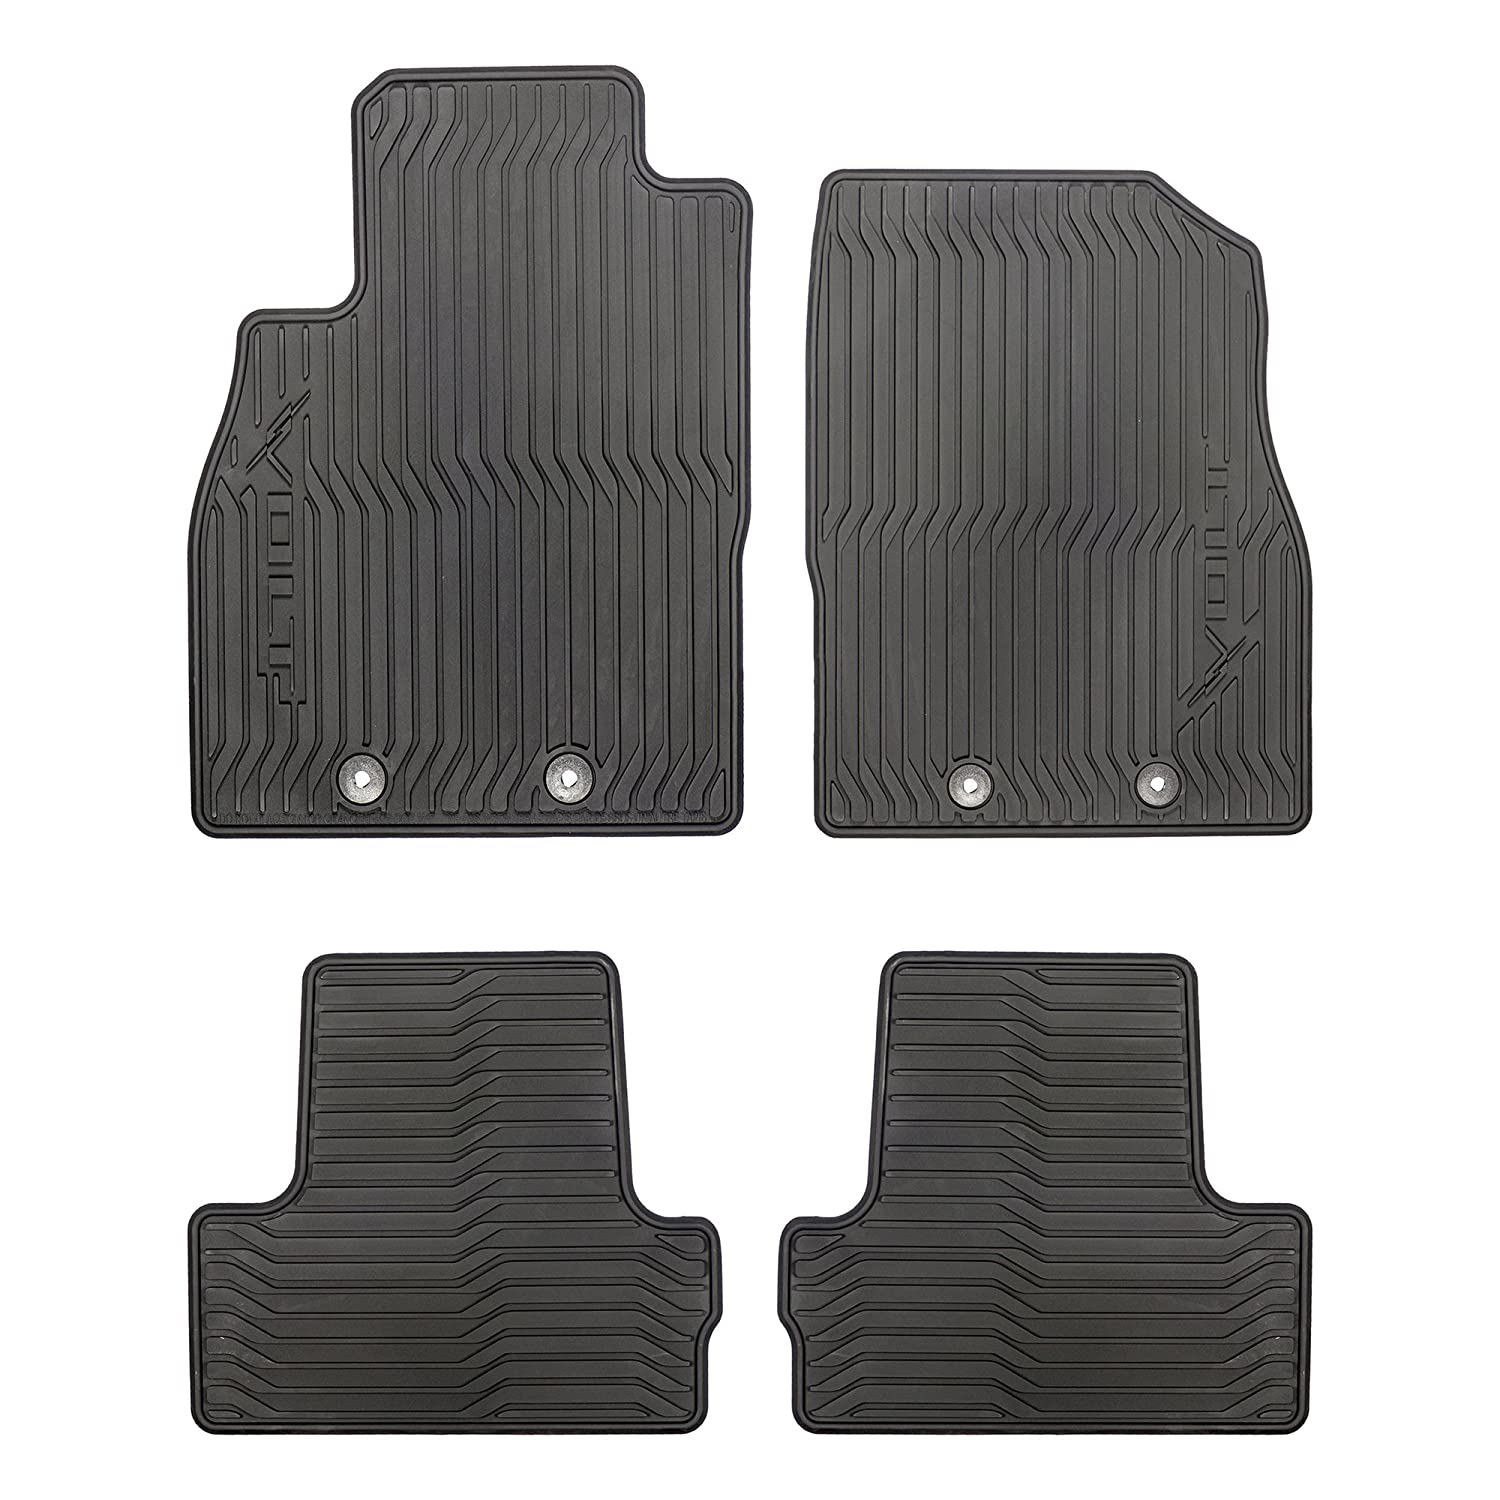 GM # 19243441 Floor Mats - Front and Rear Premium All Weather - Ebony with Volt Logo Chevrolet/GM